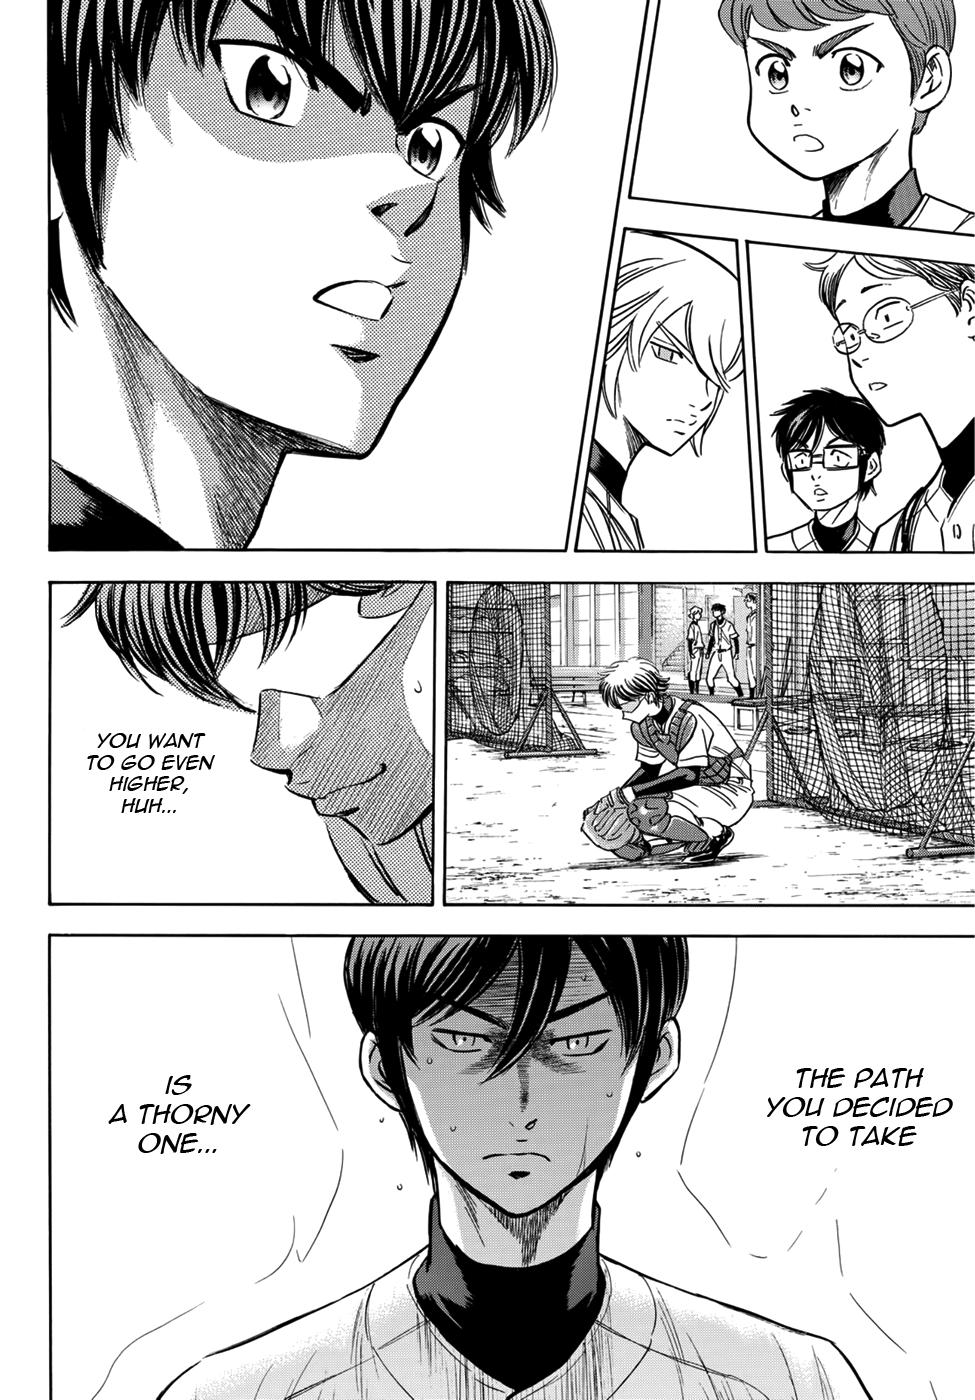 Daiya no A - Act II - Chapter 35